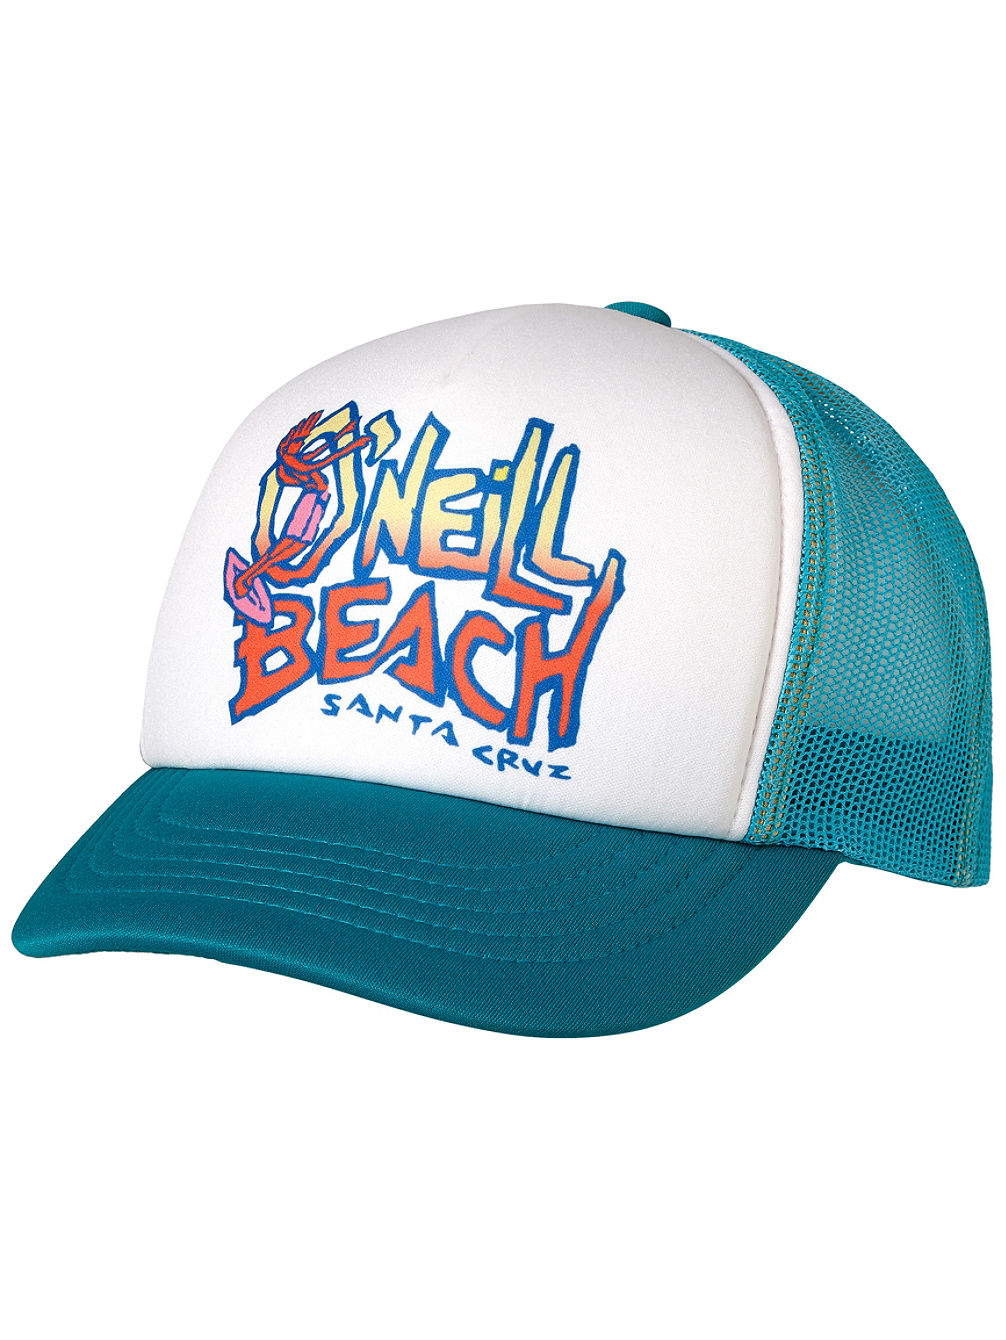 Beach Cap Youth